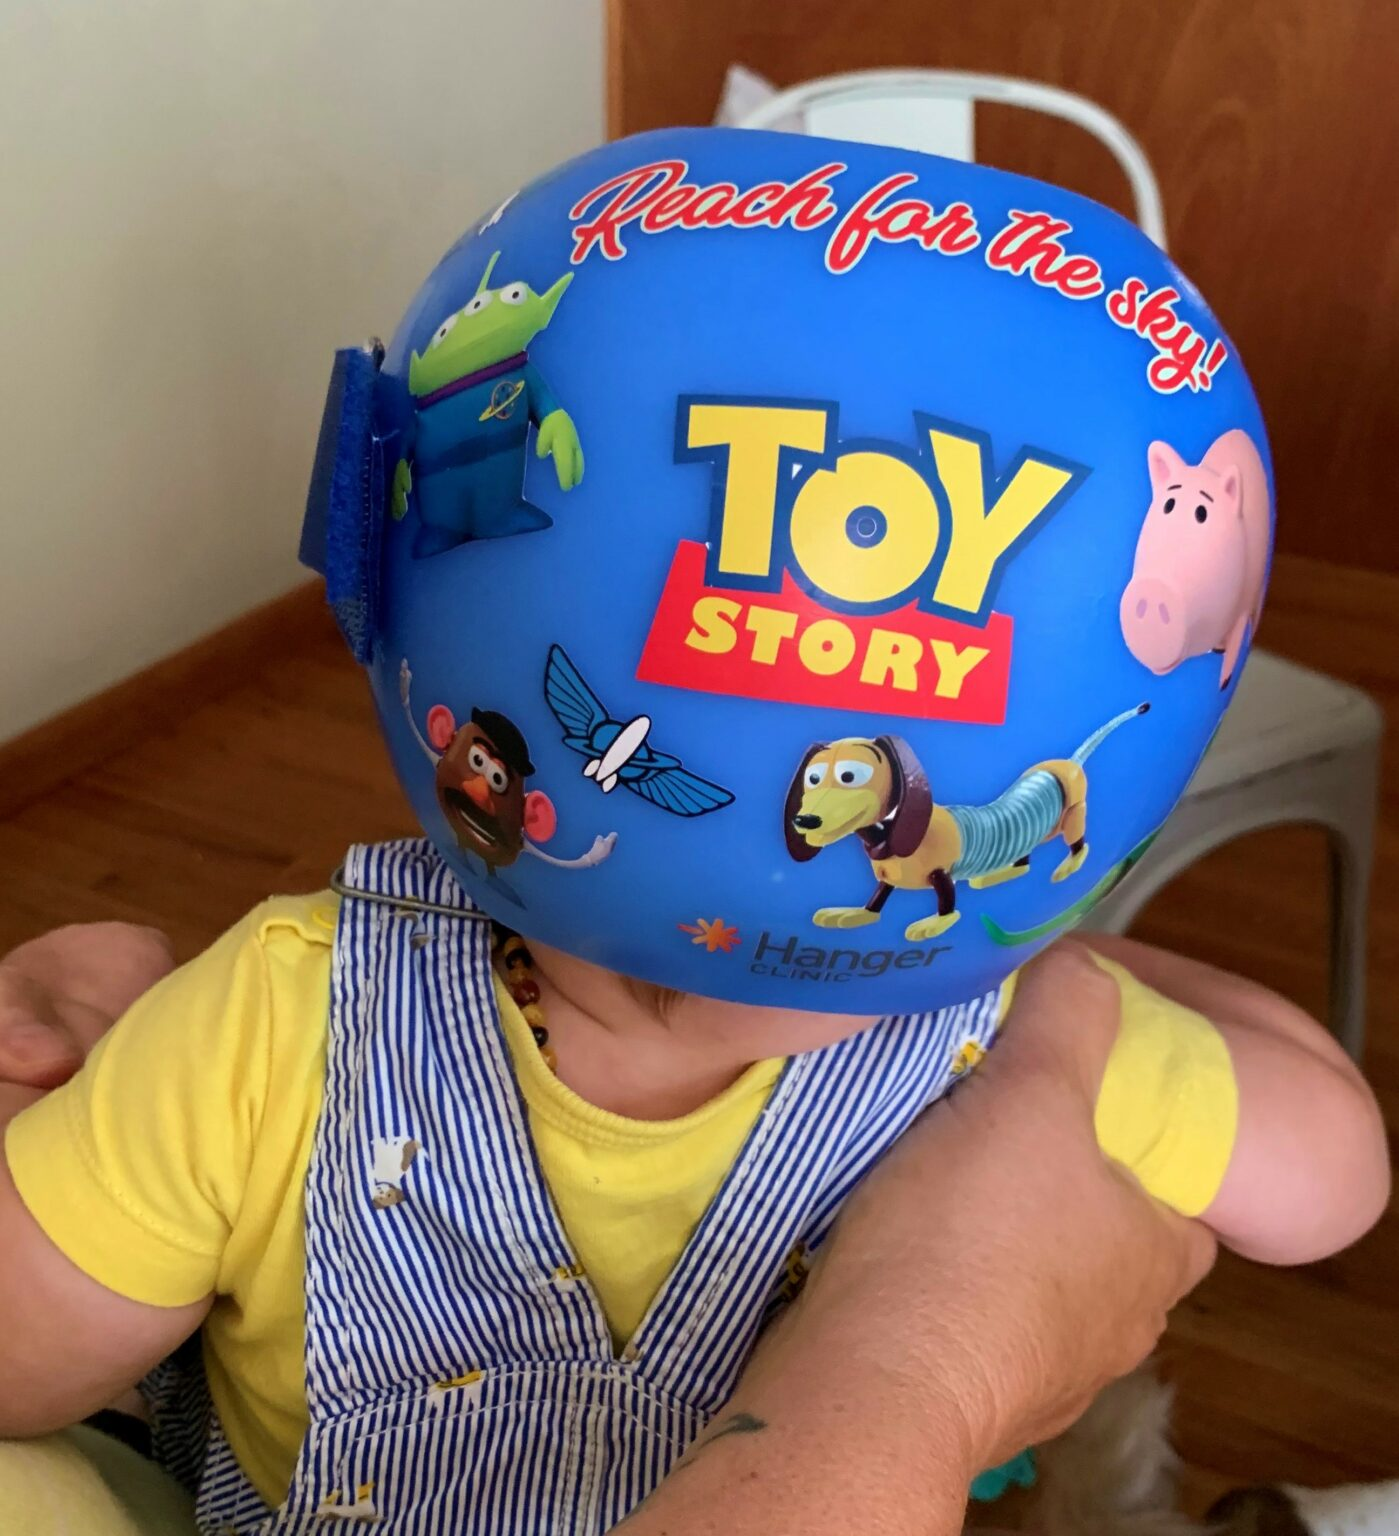 Toy story cranial band